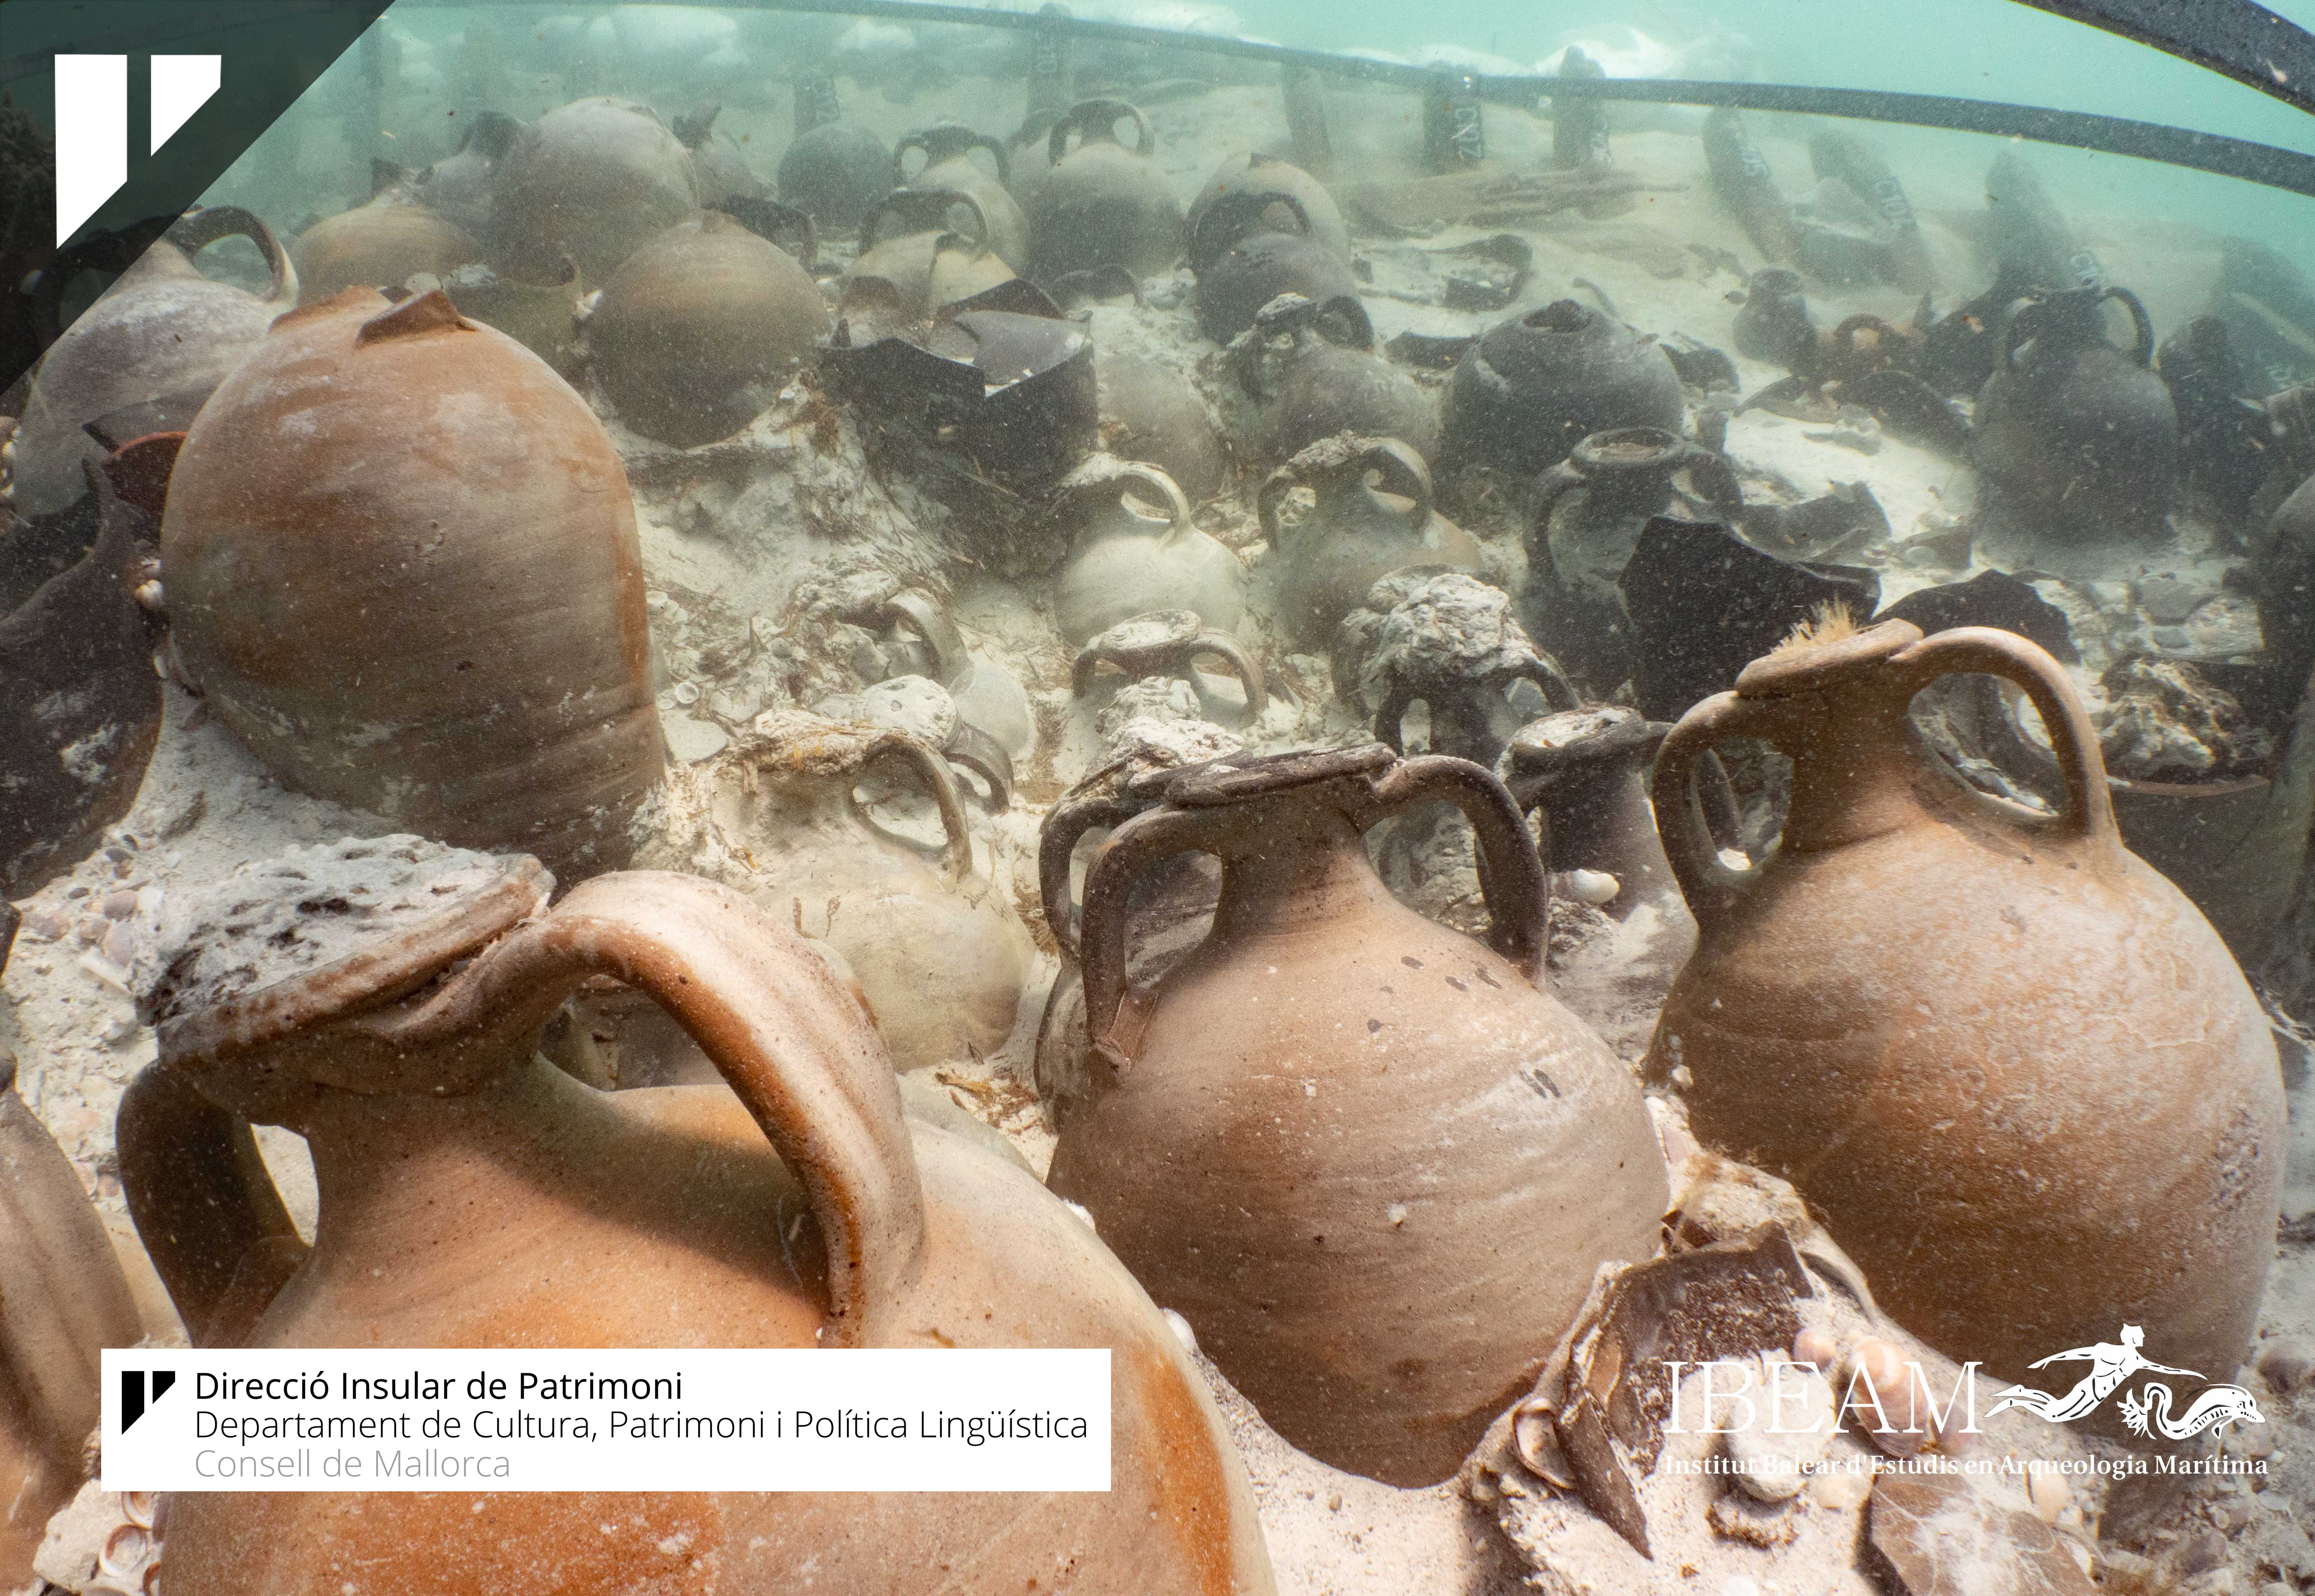 Stunning cargo discovered on well-preserved Roman shipwreck